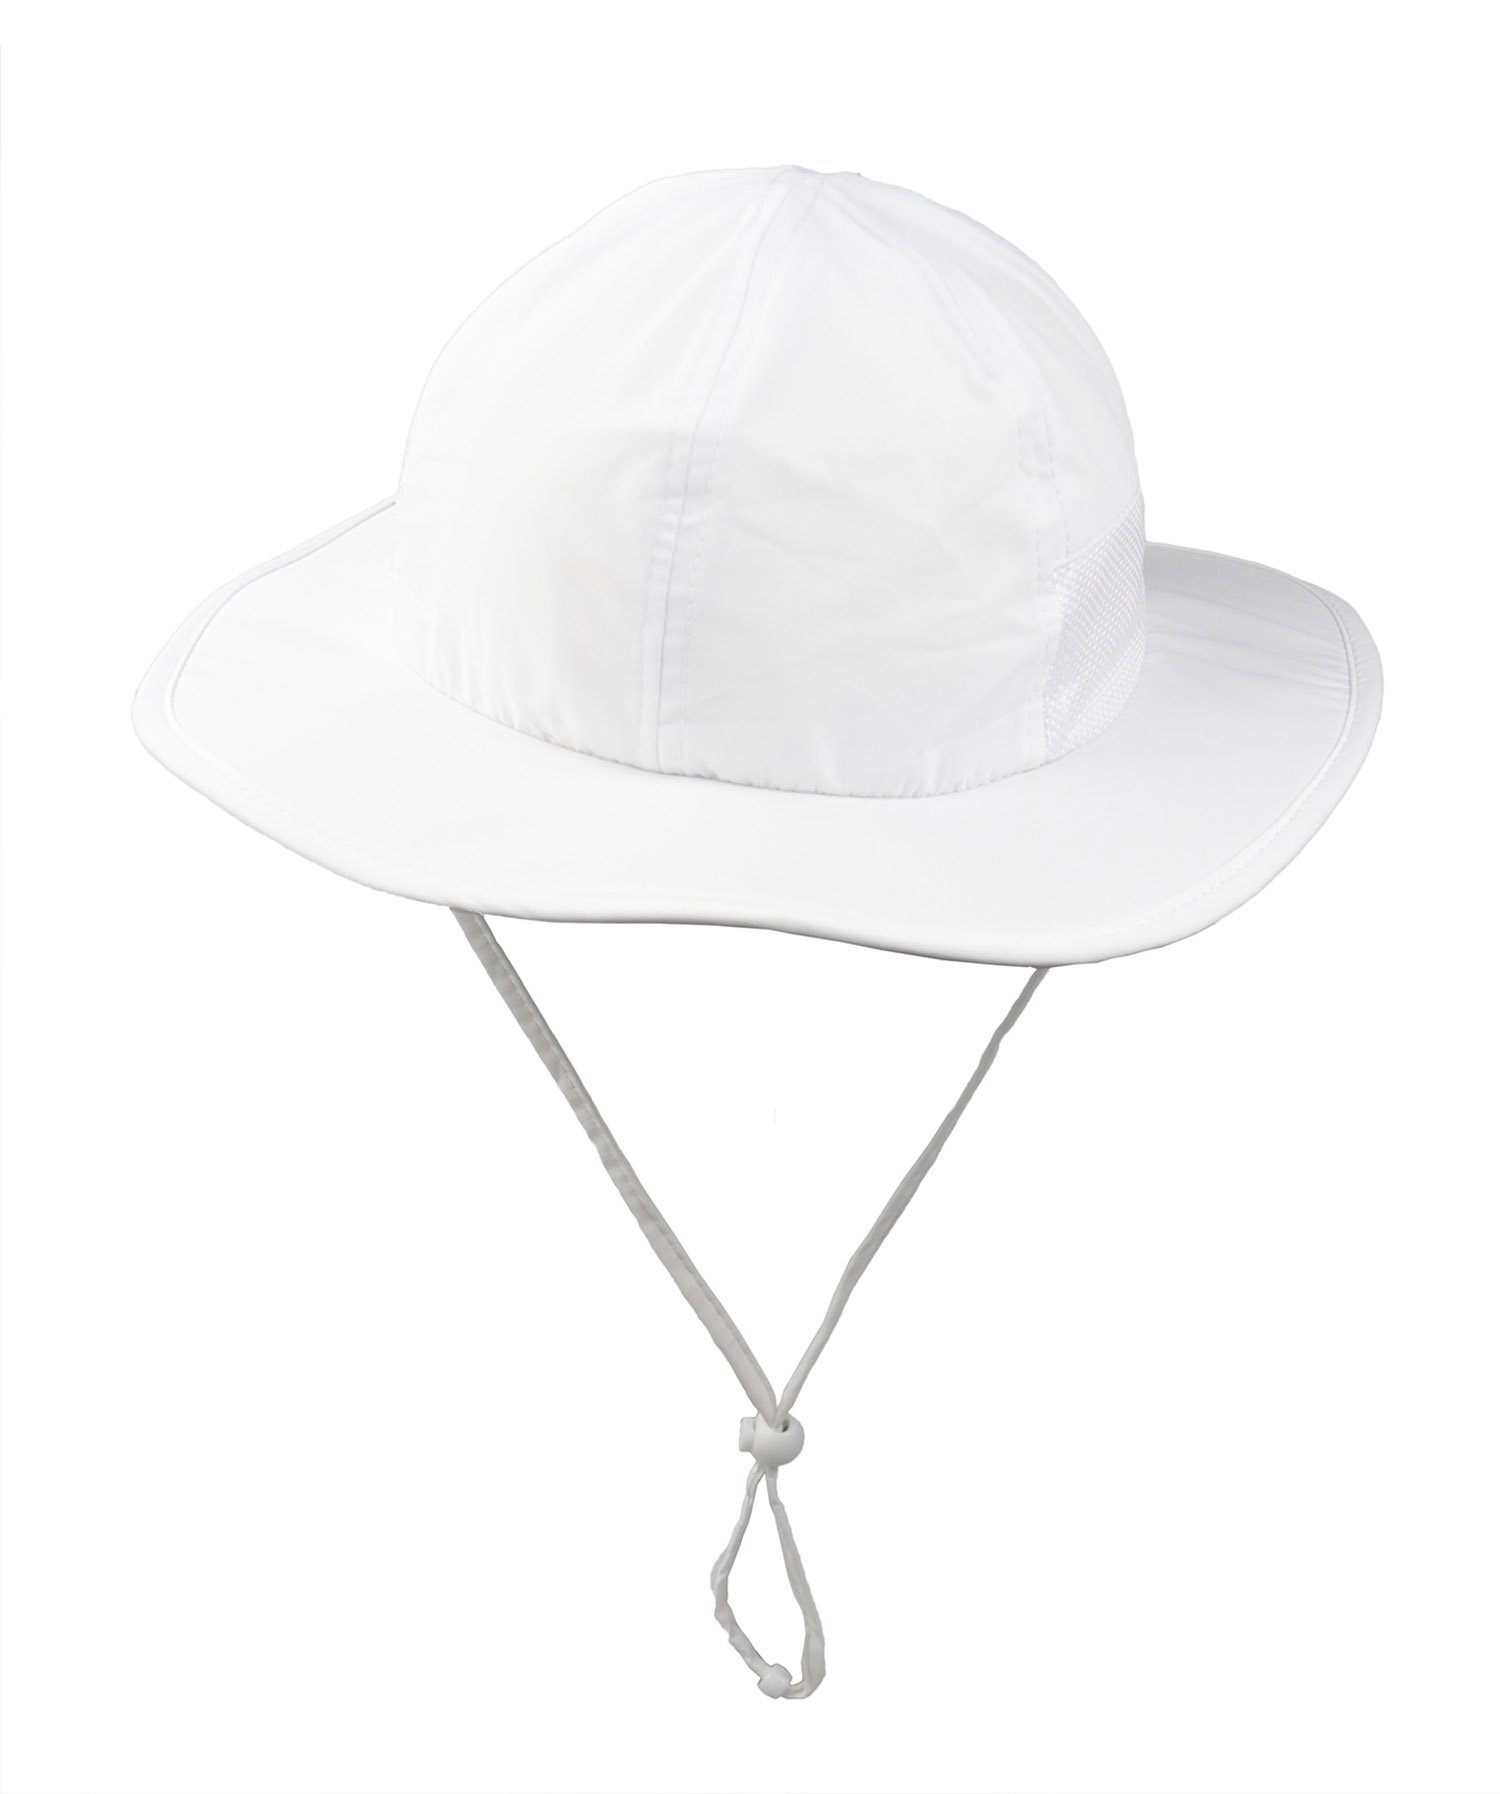 ZZLAY Wide Brim Sun Hat SPF 50+ UV Protection Breathable Adjustable Cap for Baby Toddler Kids